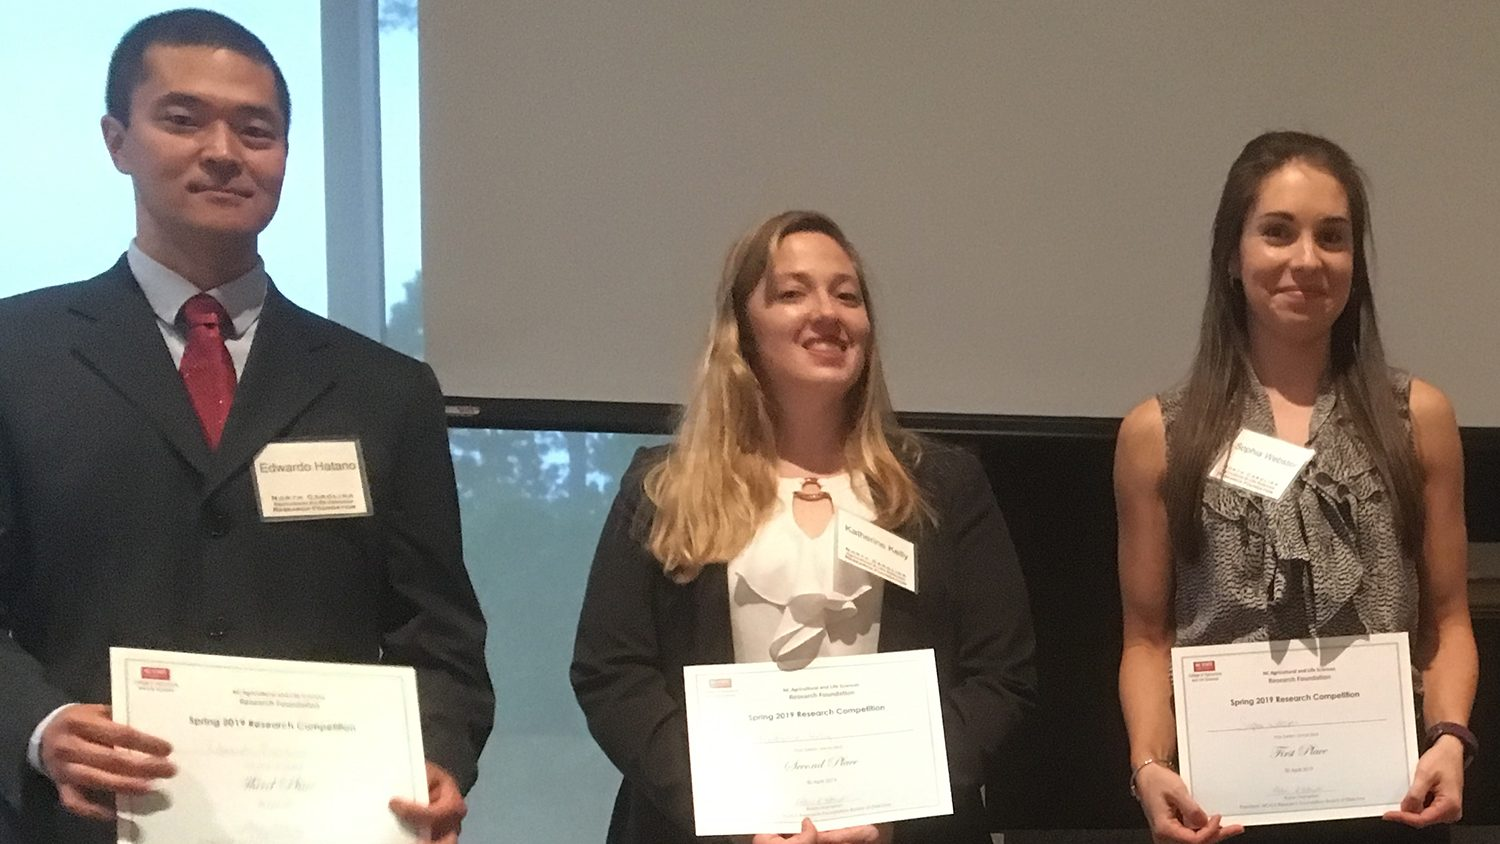 Pictures of two women and one man holding certificates.